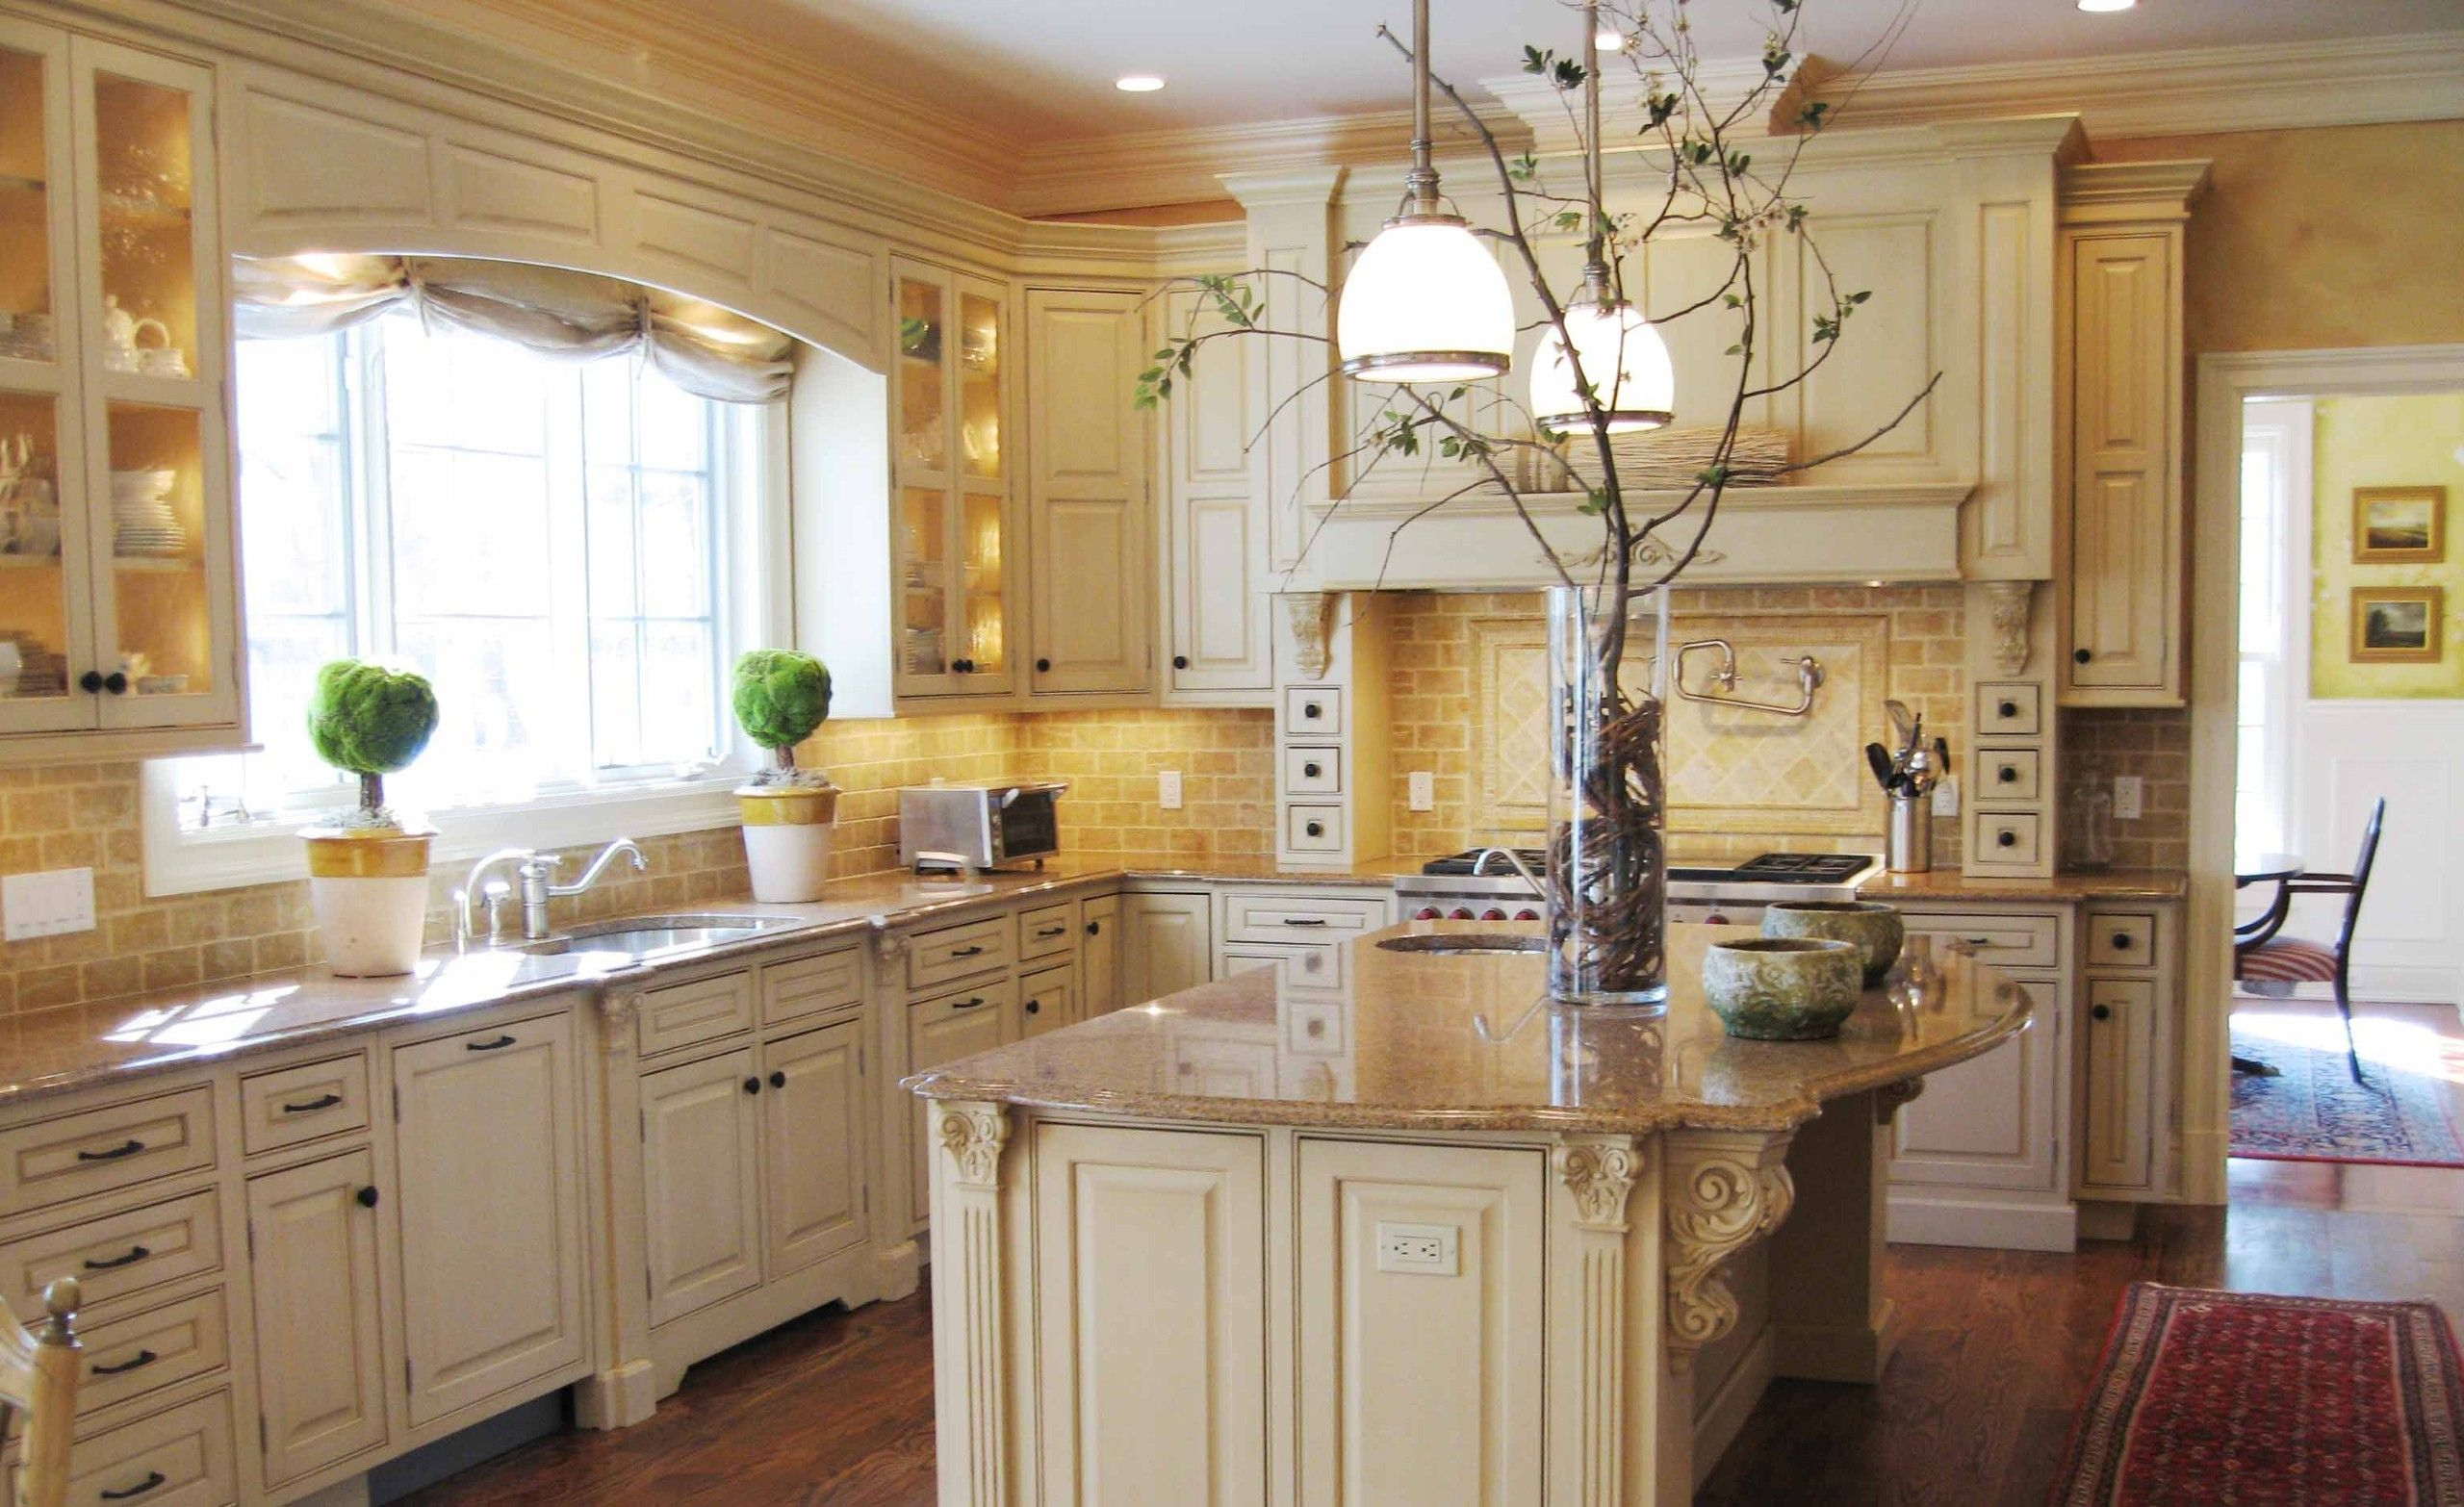 French Country Wall Decor Kitchen : Terrific french country kitchen decor with broken white